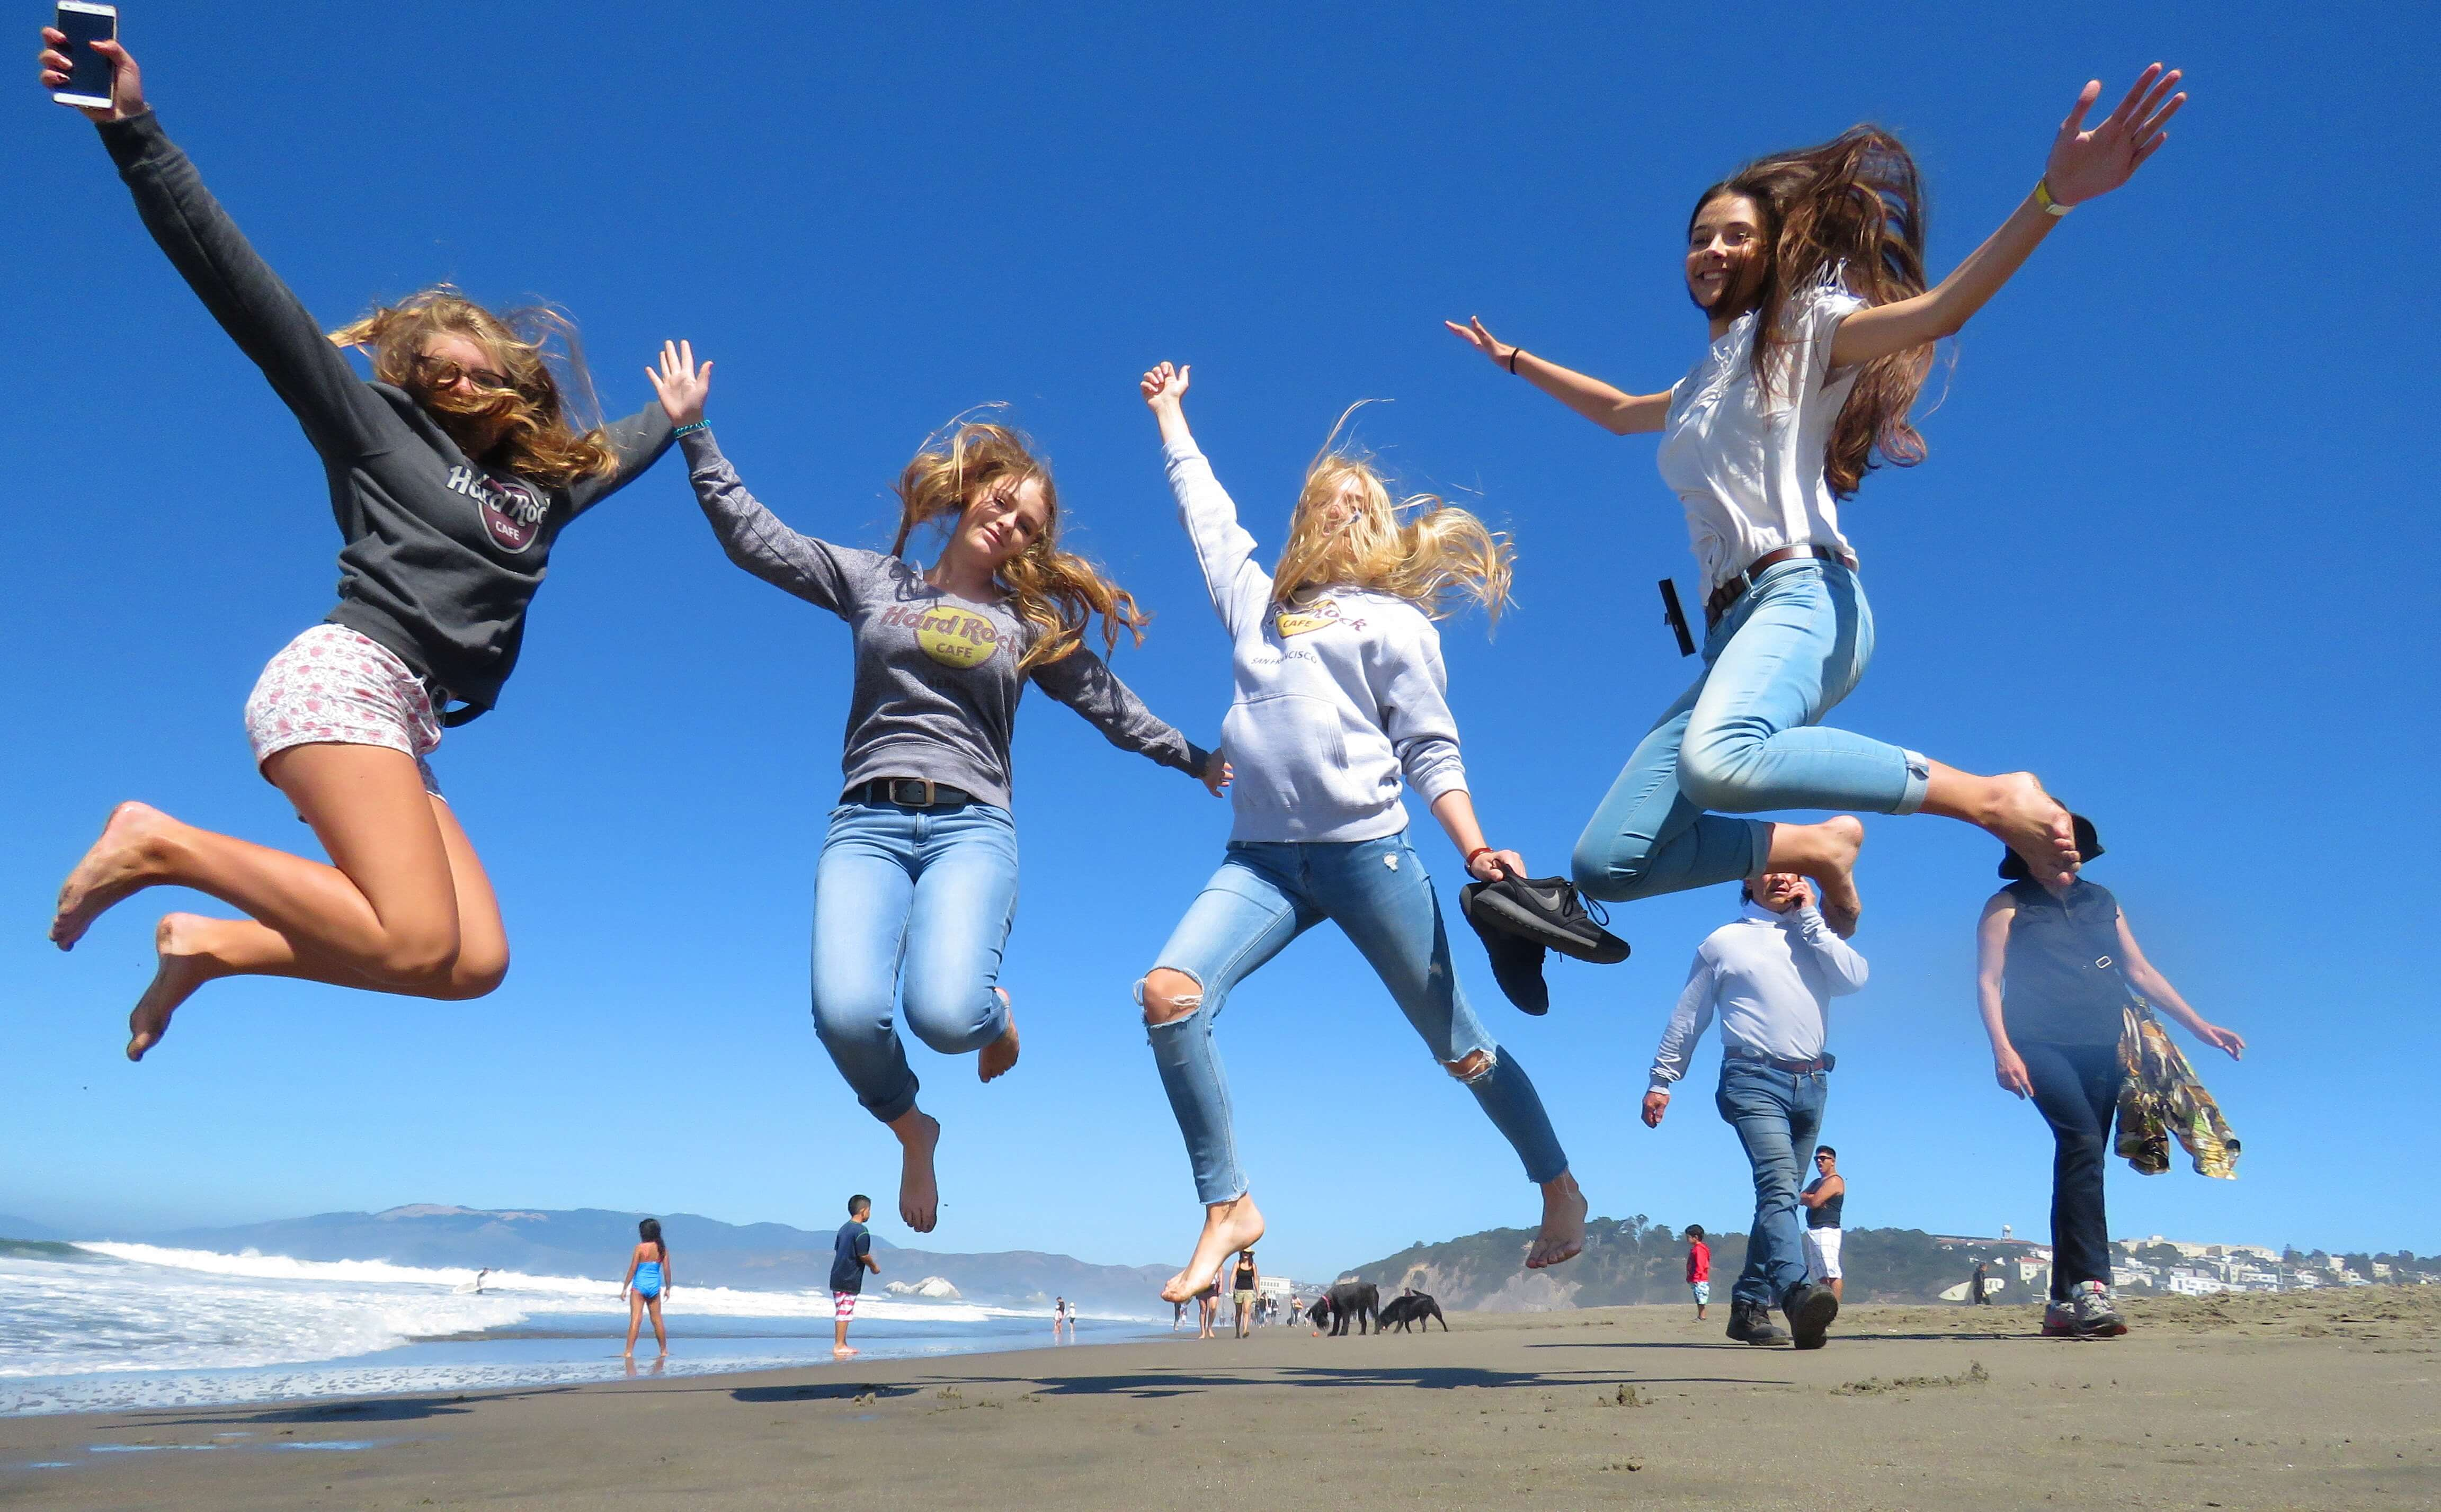 fun_cool_things_to_do_in_san_francisco_beach_activities